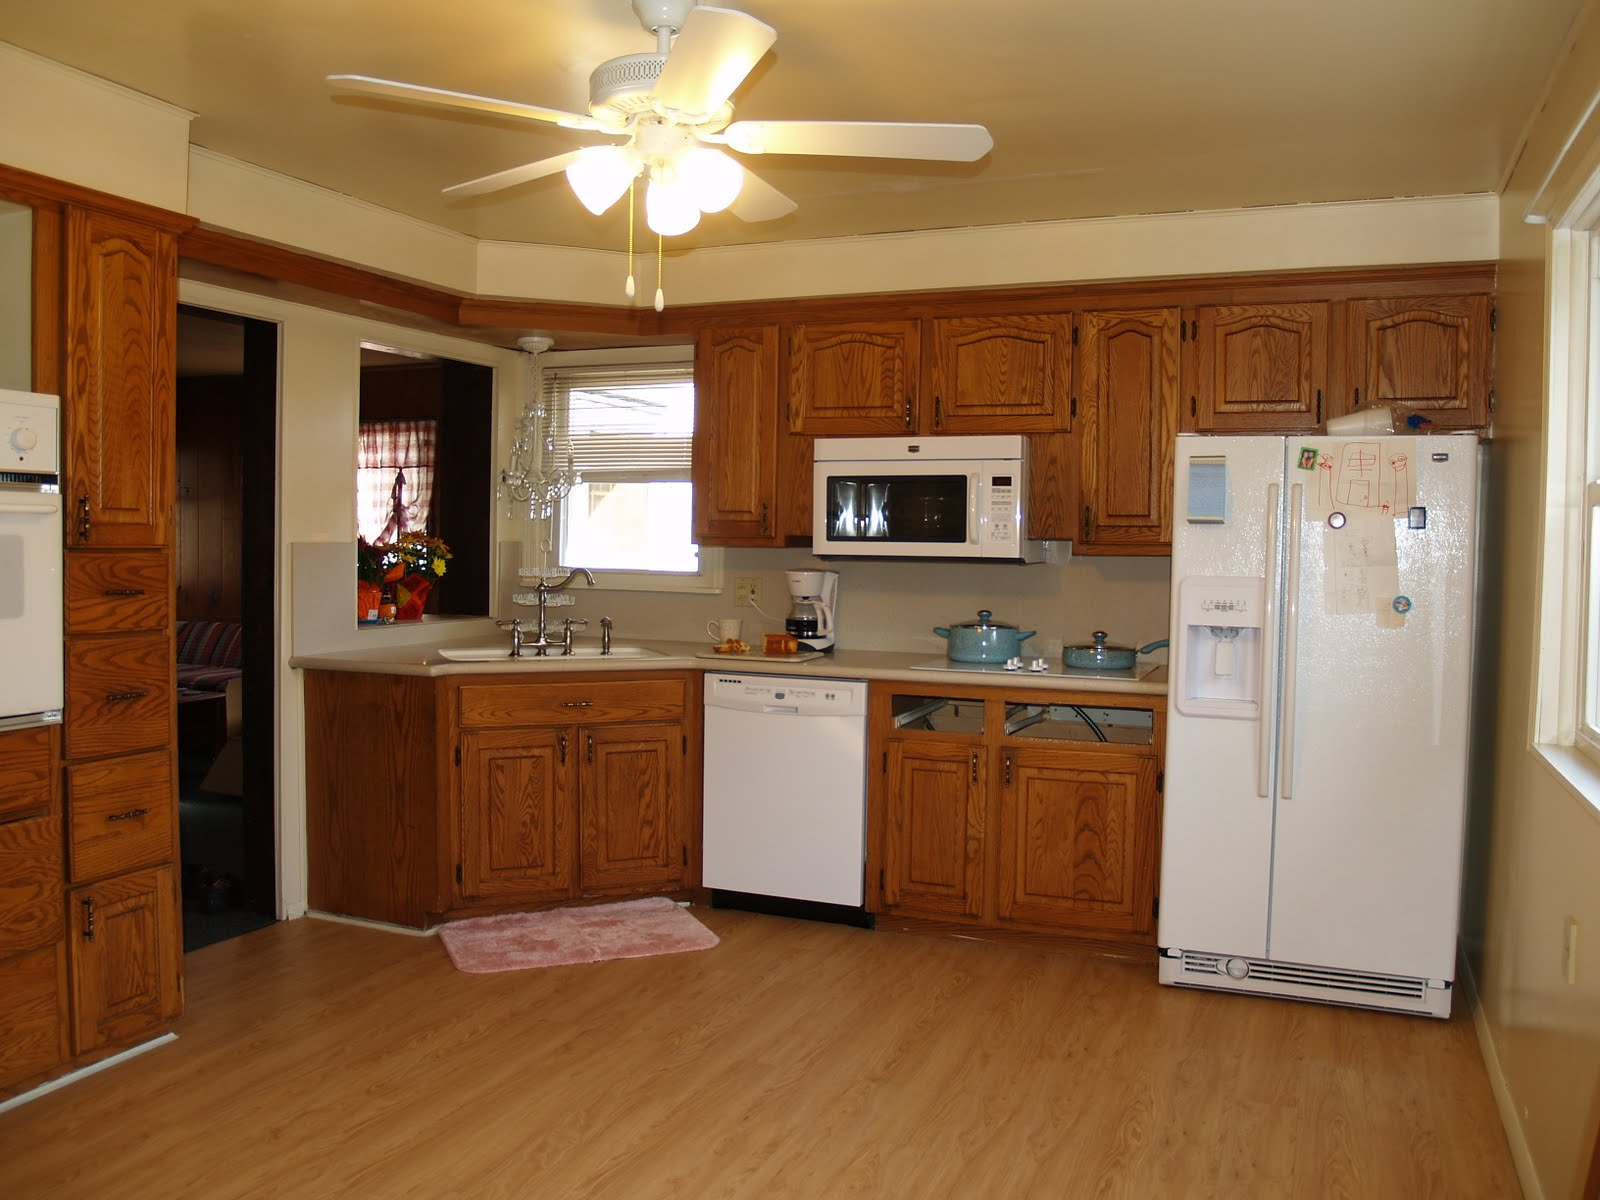 White Kitchen with Maple Cabinets and Appliances